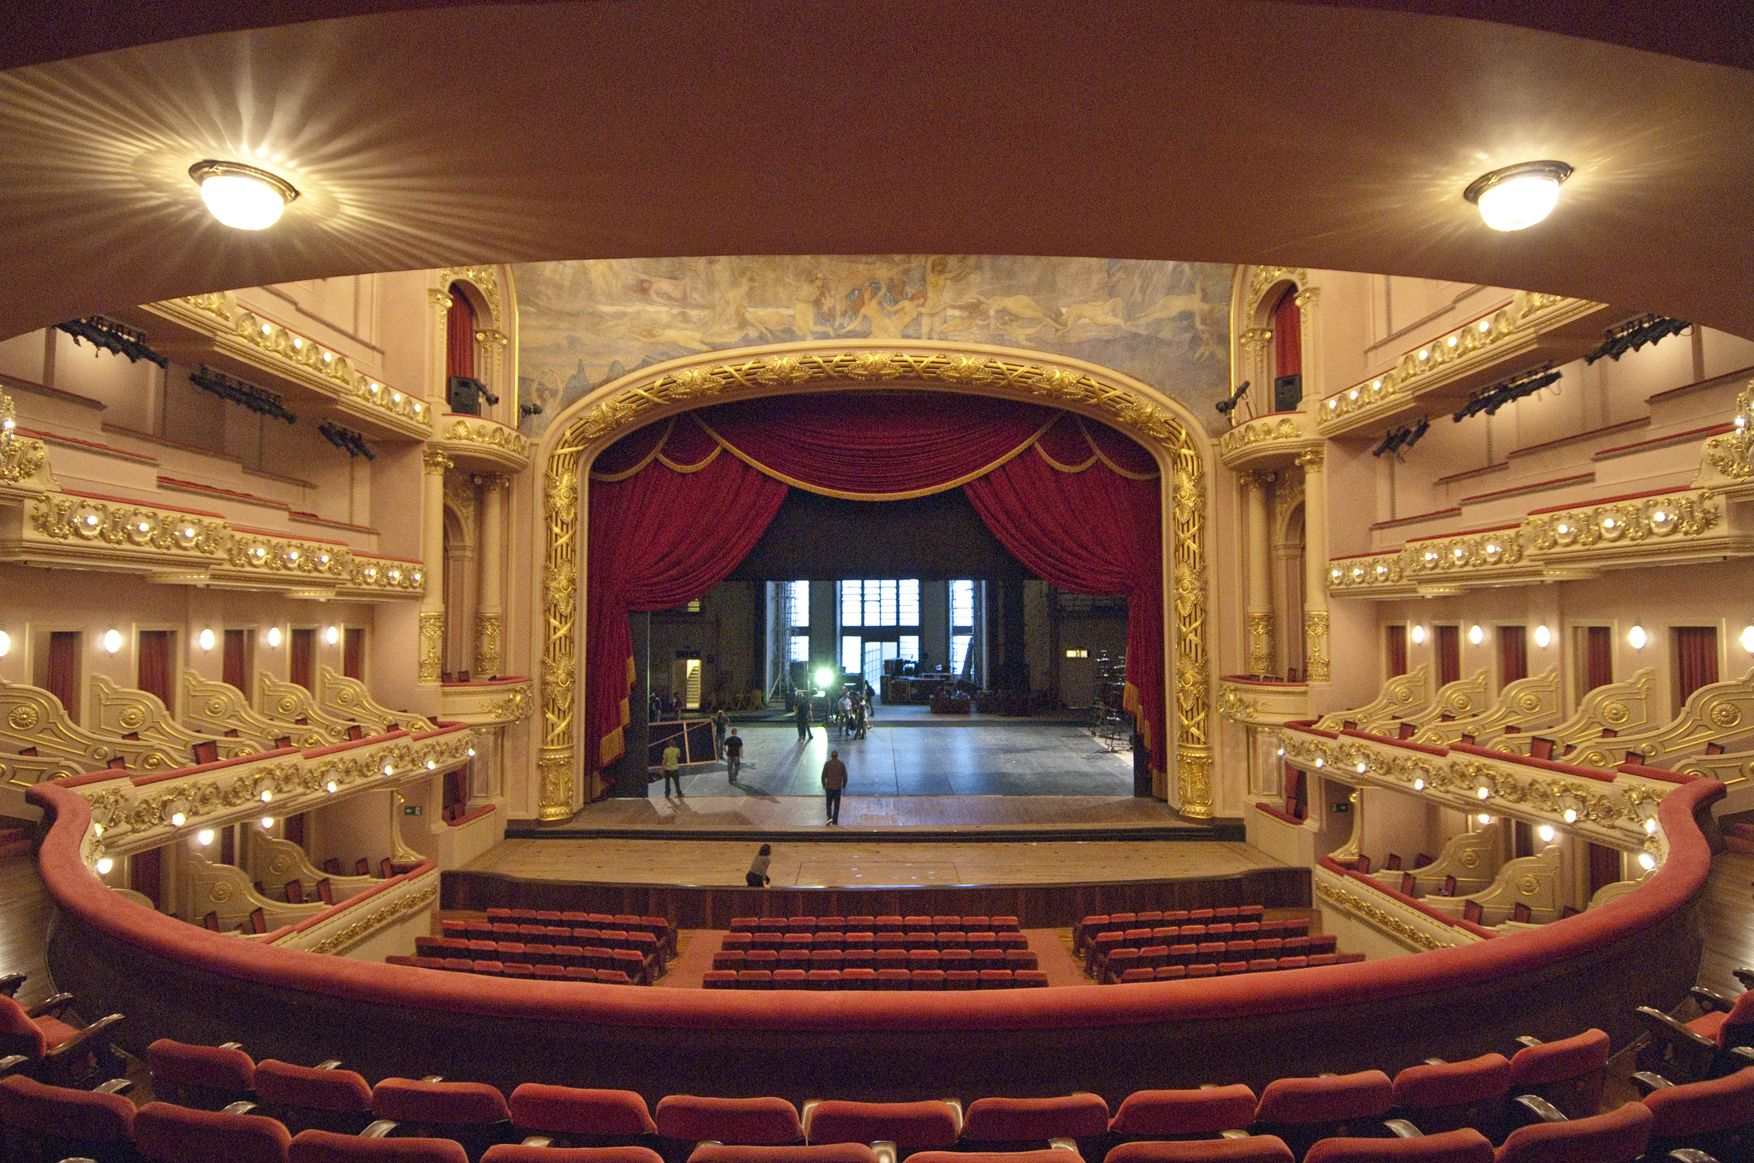 theater proscenium arch - Google Search | Theater ...